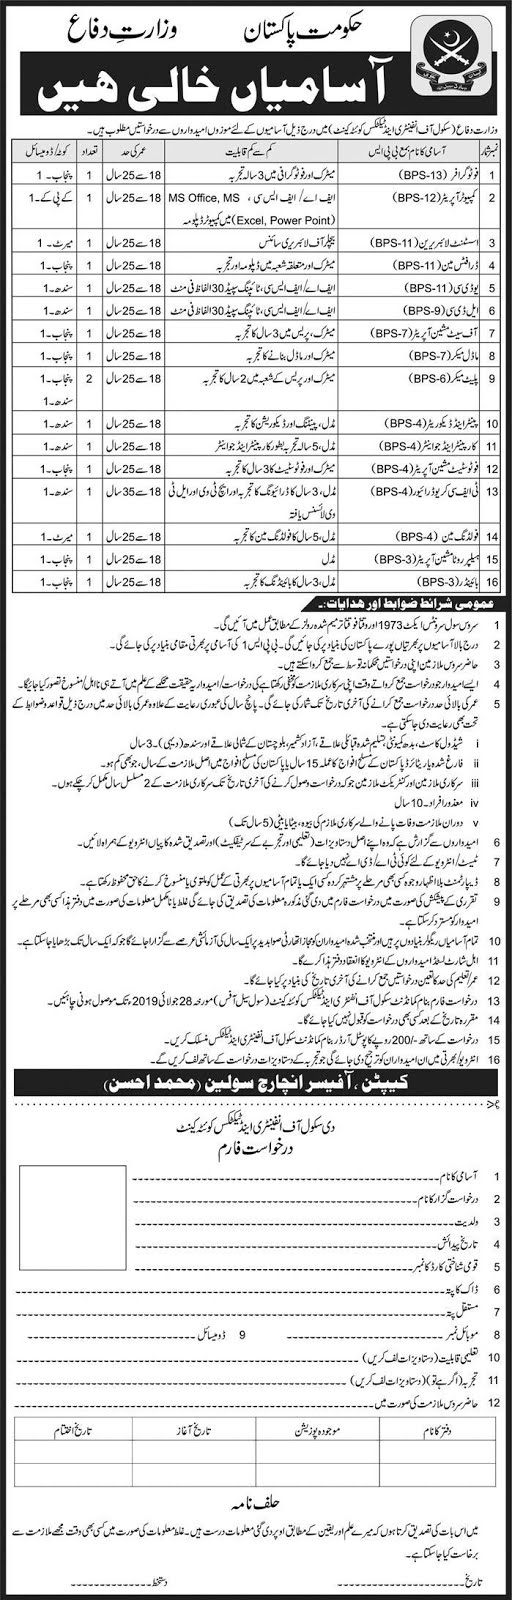 Ministry of Defence Jobs 2019 Apply Now,Images for Ministry of Defence Jobs 2019,Ministry of Defence Govt of Pakistan Jobs Latest 2019,Ministry of Defence Jobs 2019 July Latest Advertisement,Ministry of Defence Jobs 2019 - Jobs in Pakistan,Ministry of Defence Jobs 2019 in Pakistan,Ministry Of Defence jobs 2019 in Pakistan - MOD Jobs on PaperPK.com,Ministry of Defence Jobs 2019 via NTS 2019 Job Advertisement,ministry of defence jobs 2019 advertisement,nts ministry of defence jobs 2019,ministry of defence jobs 2019 application form,ministry of defence pakistan jobs 2019,ministry of defence jobs 2018 pakistan,ministry of defence (nts jobs),ministry of defence jobs 2018 advertisement,ministry of defence jobs 2018 application form